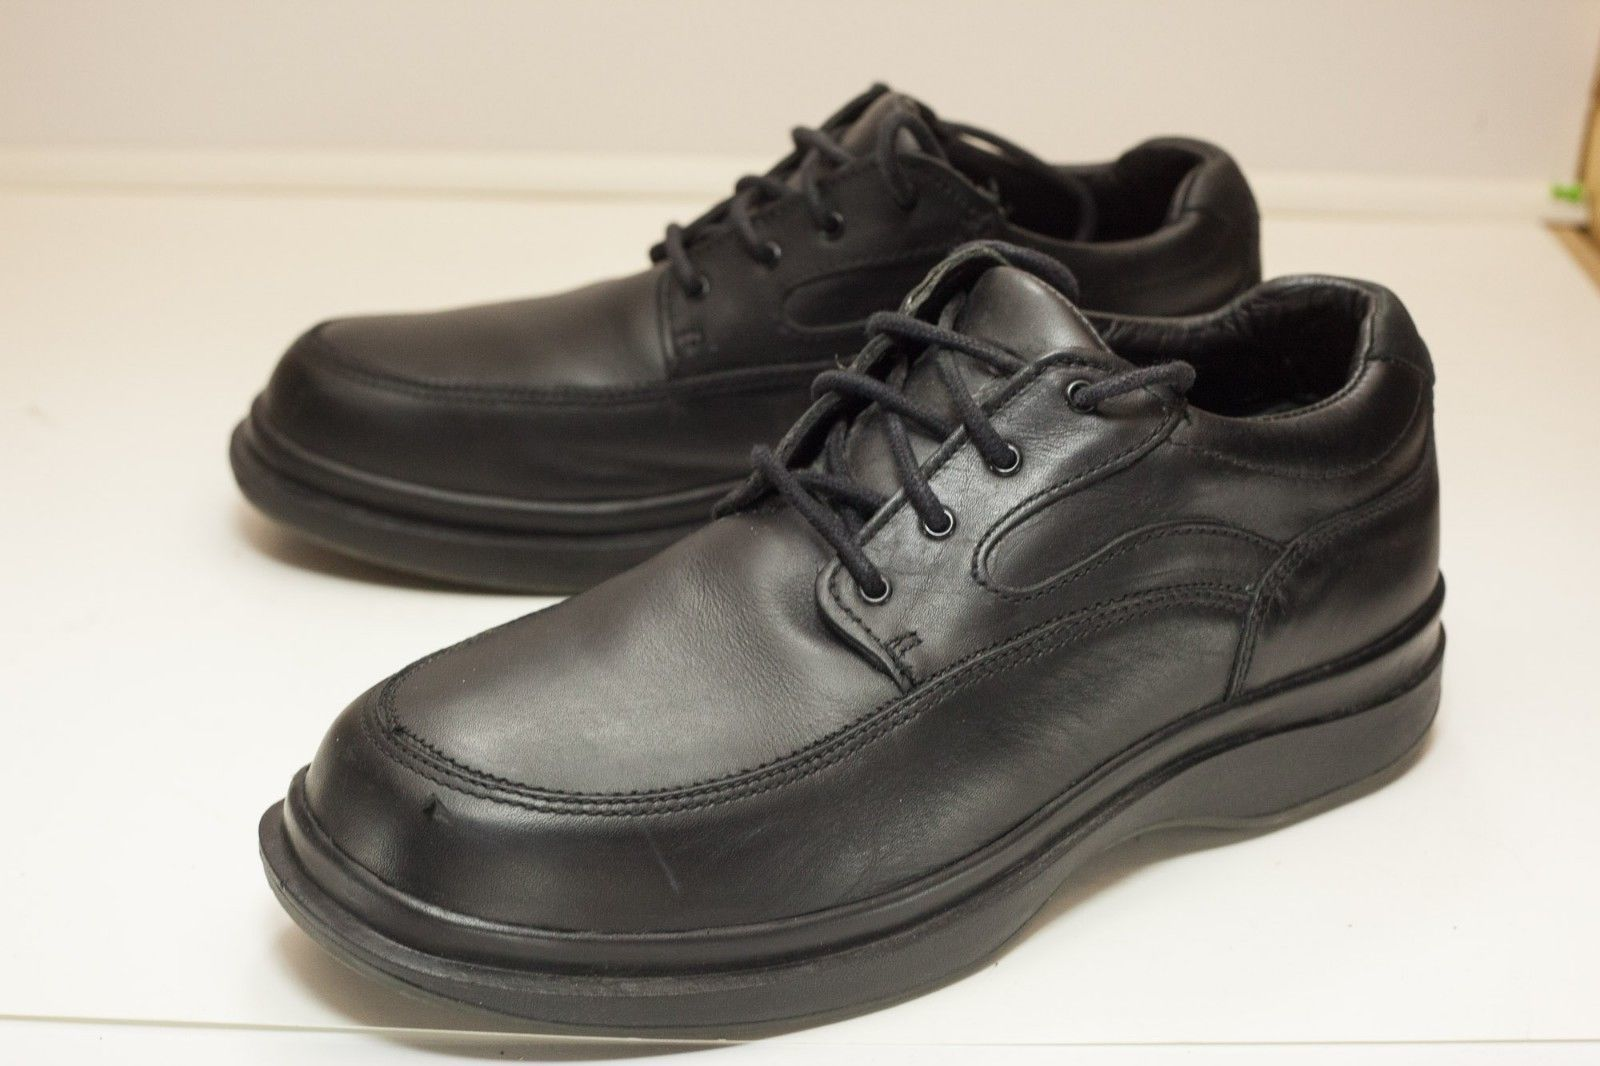 Redwing US 10.5 D Black Lace Up Oxford Men's